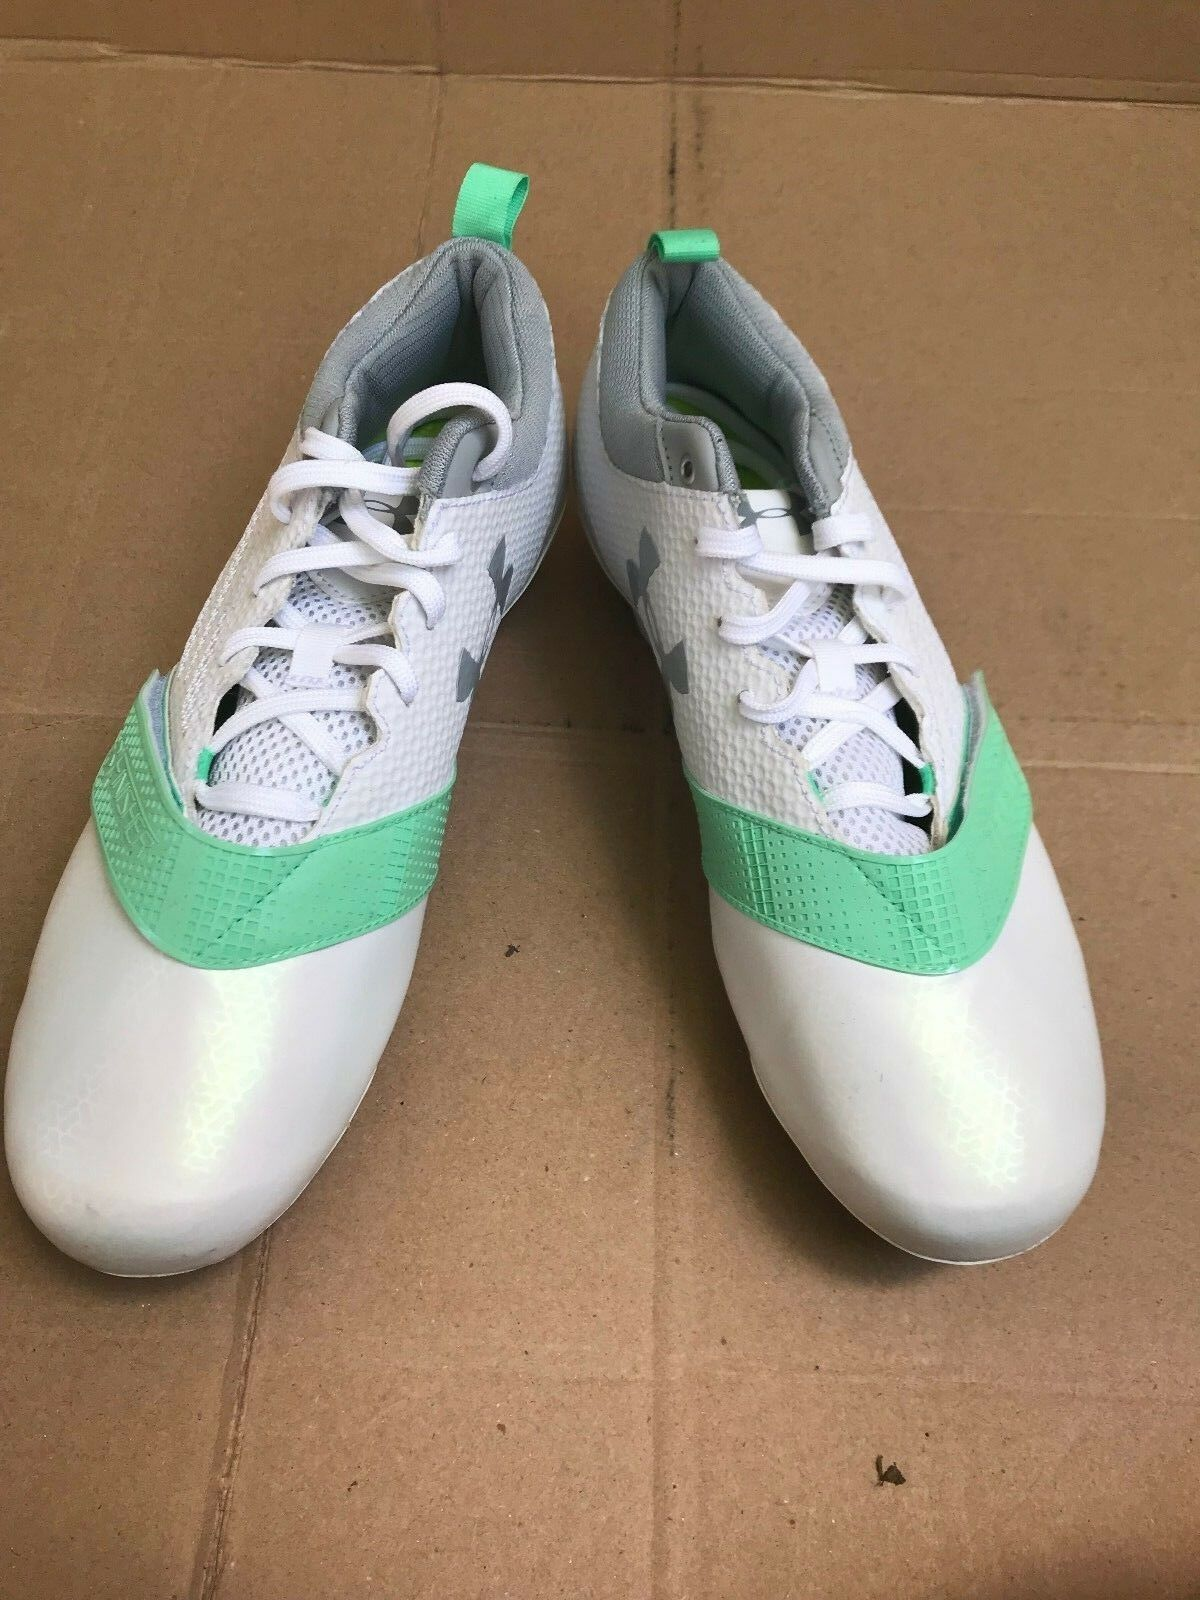 New Under Armour Women's Lax Finisher MC Cleats White / Gray Size 11 1278783-103